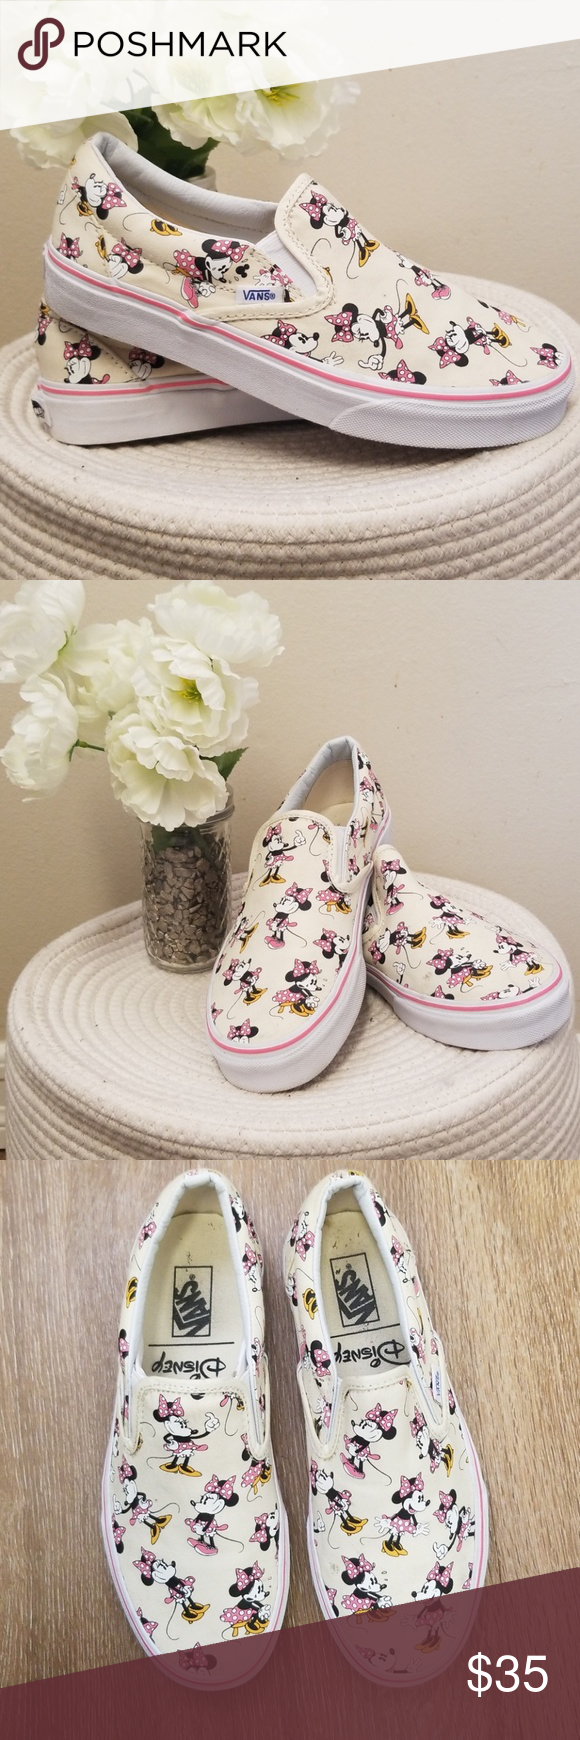 e4e43cf0794 LIMITED EDITION  MINNIE MOUSE  DISNEY VANS Special Release Disney Classic  Slip-Ons - Minnie Mouse Edition! These have only been worn once! Vans Shoes  ...